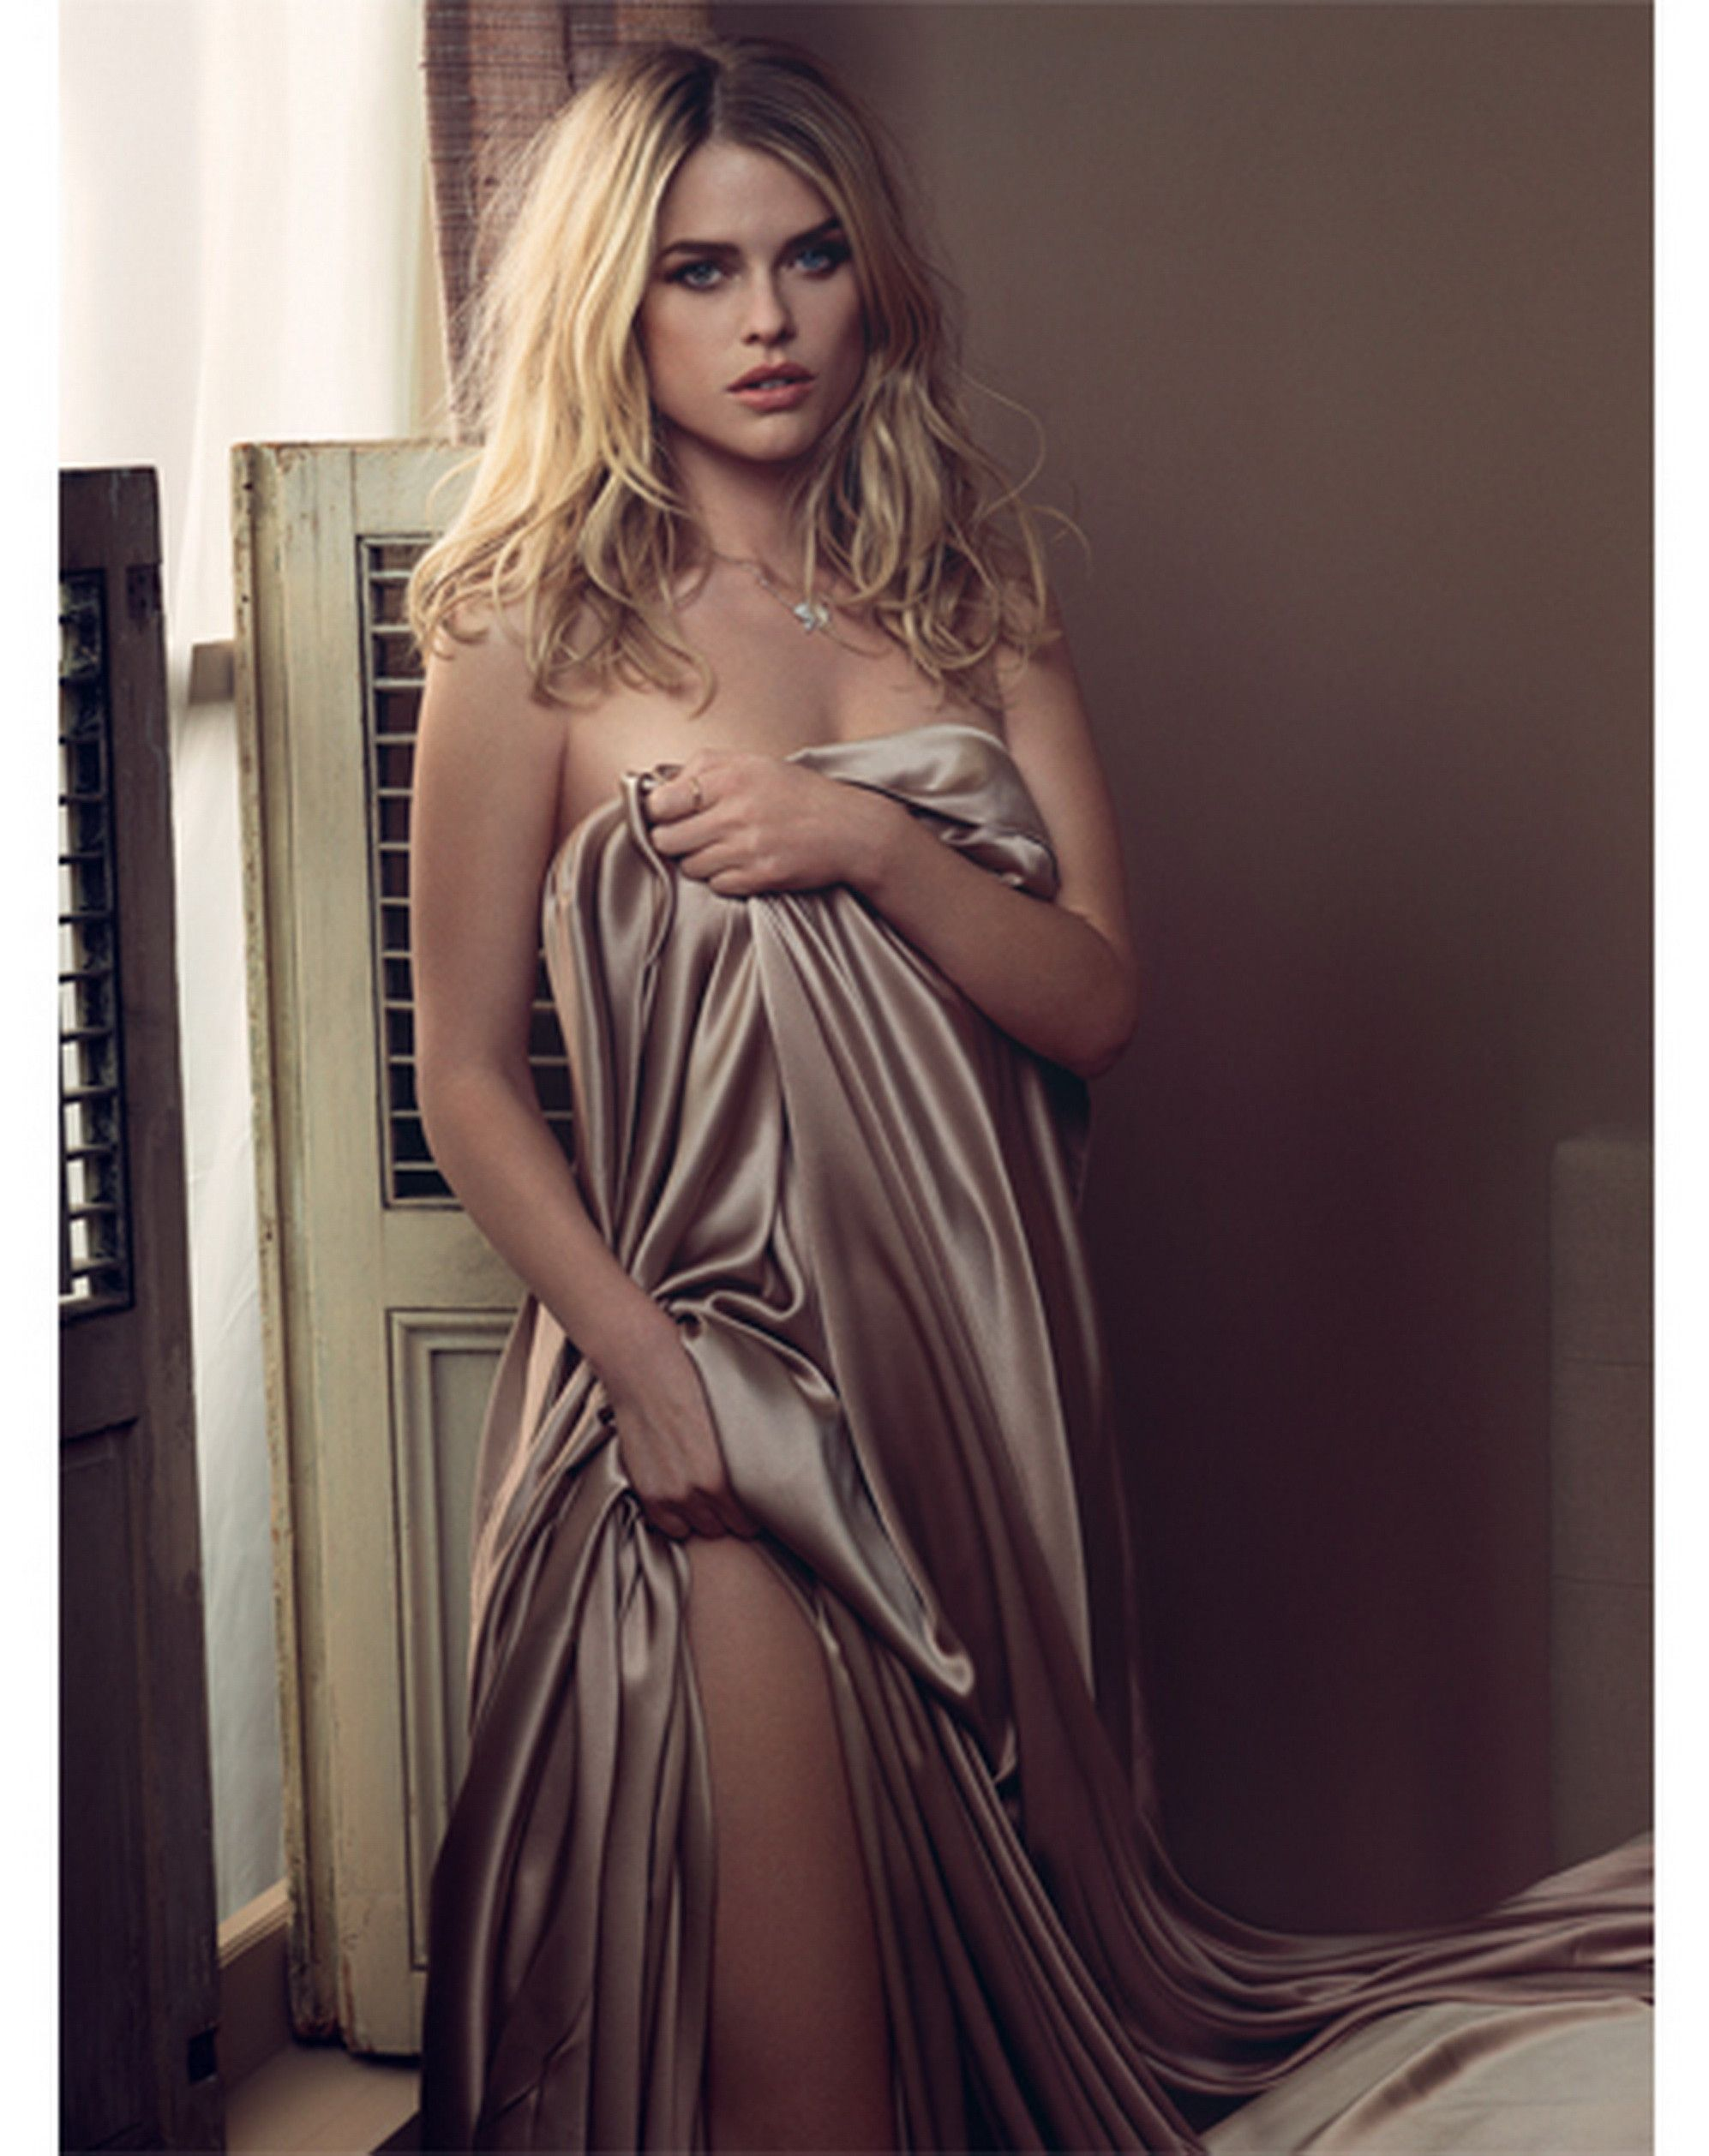 Alice eve fappening new picture